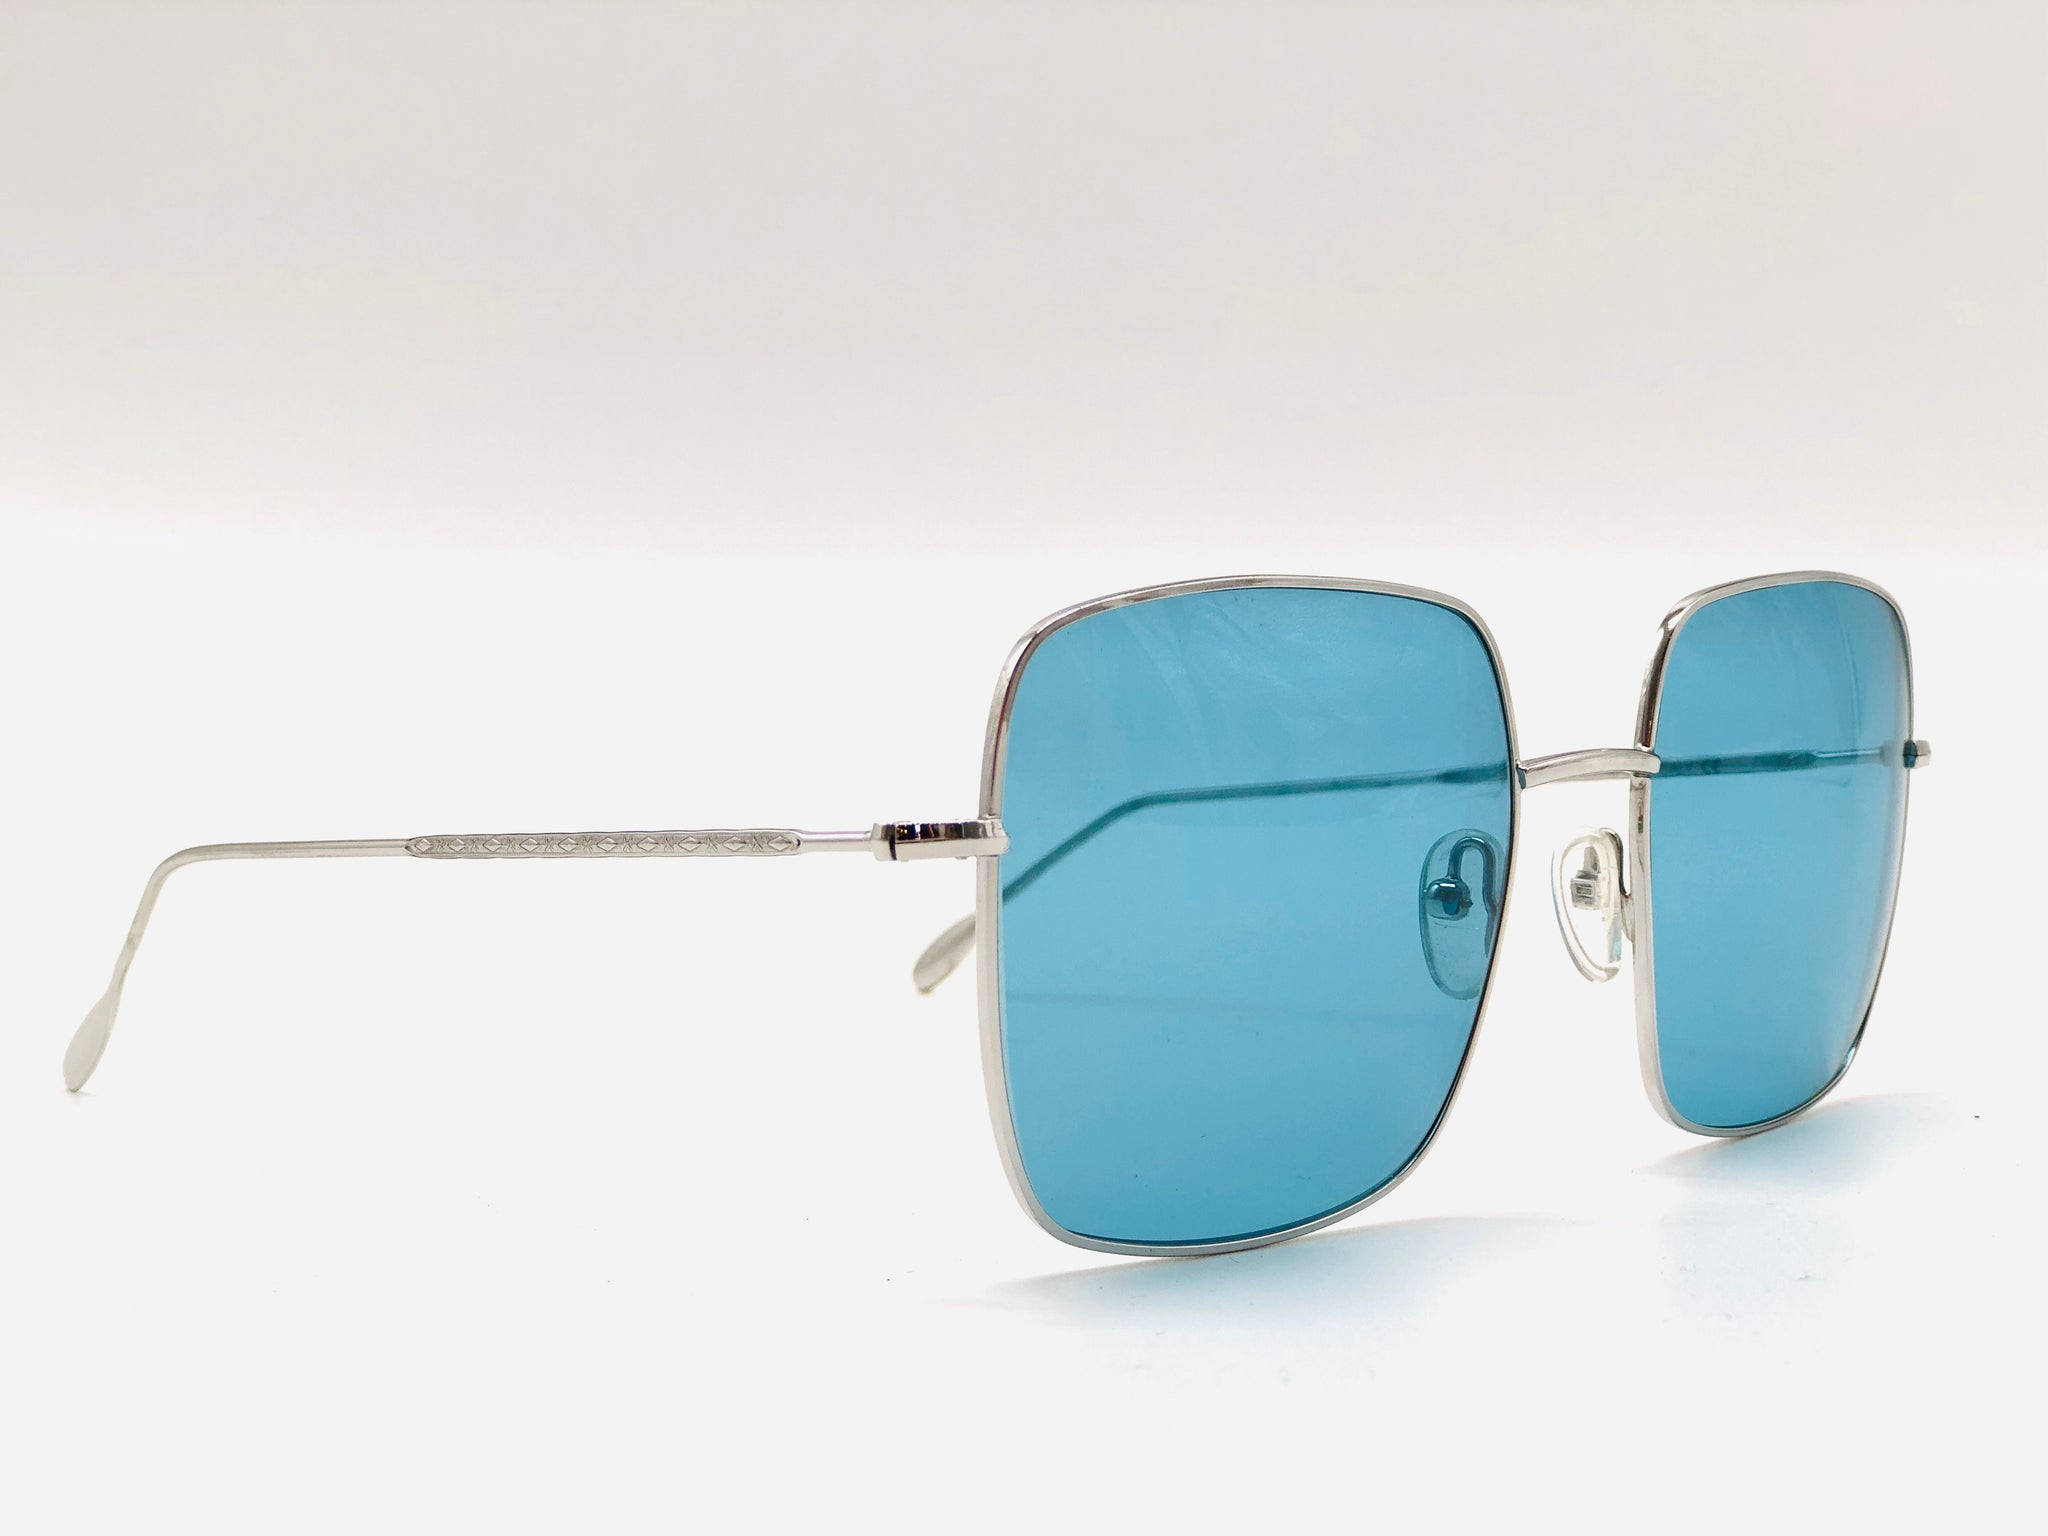 STAR metal silver square-shaped clear blue lenses sunglasses